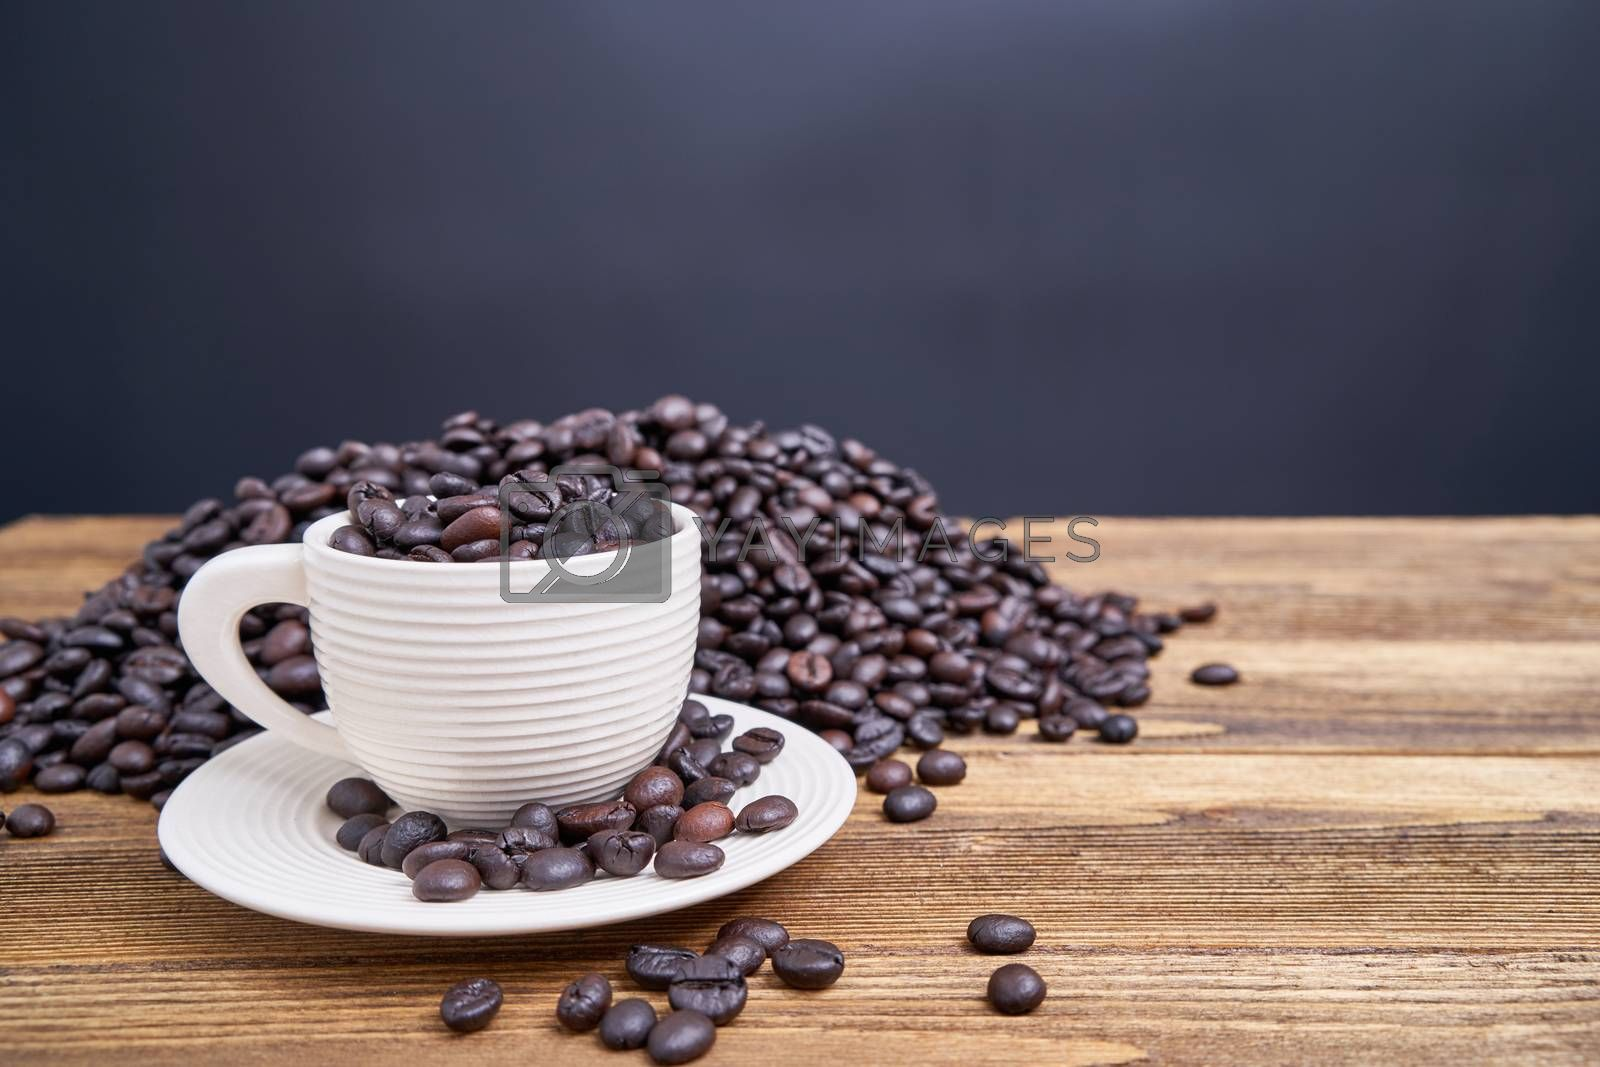 Royalty free image of Close up coffee bean in white cup with copy space by eaglesky